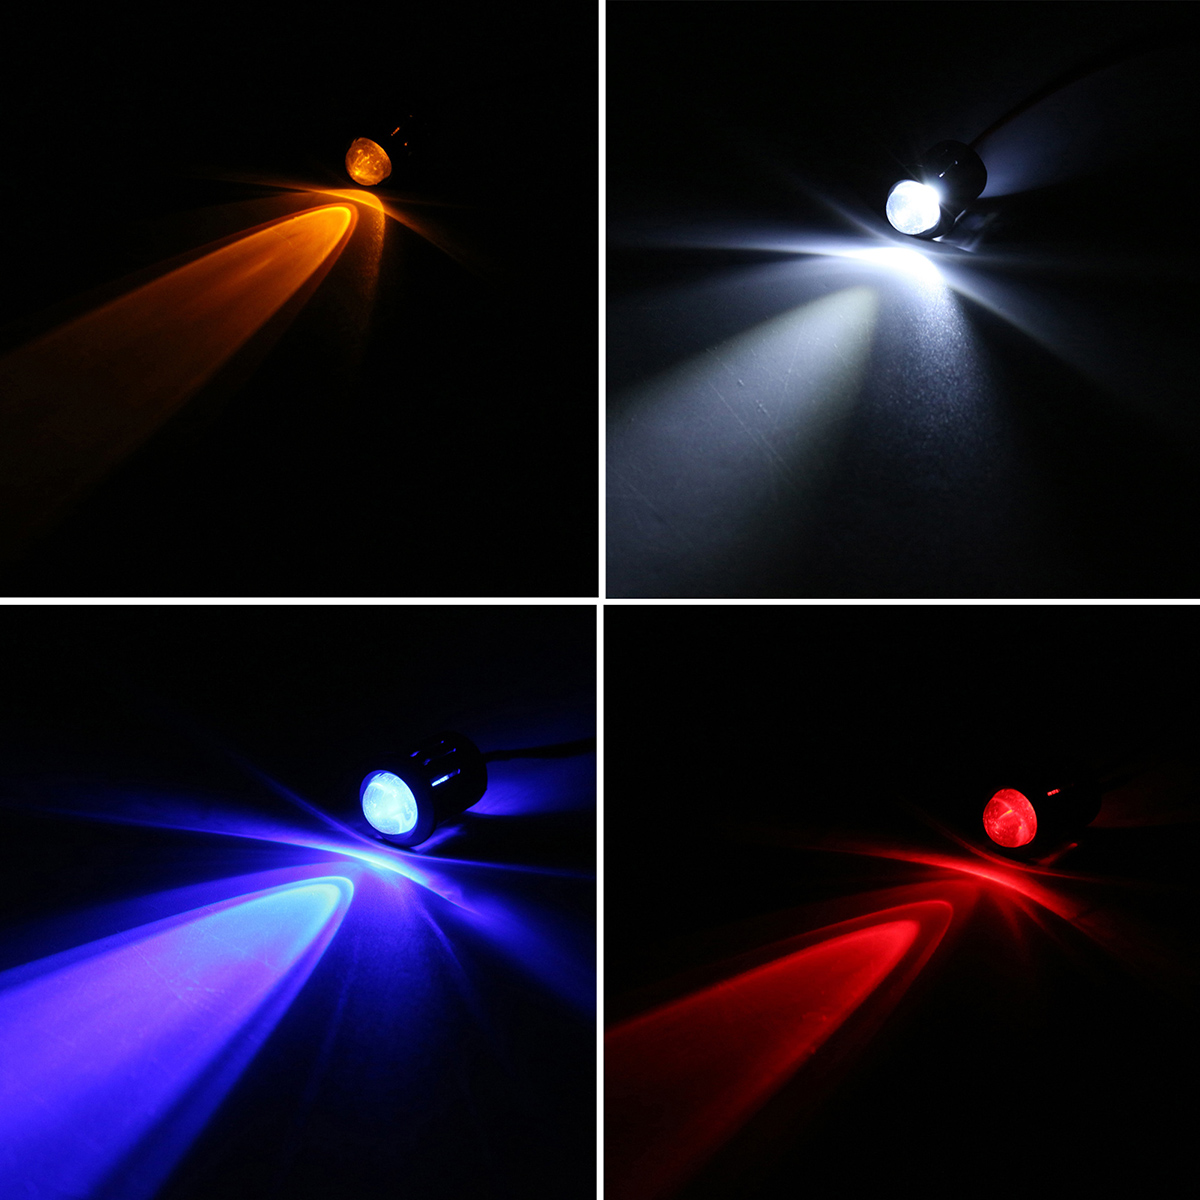 10Pcs 4 Colors 12V 10mm Pre-Wired Constant LED Light Flashing Lamp Bright Water Clear Emitting LED Diode Bulbs + Plastic Shell